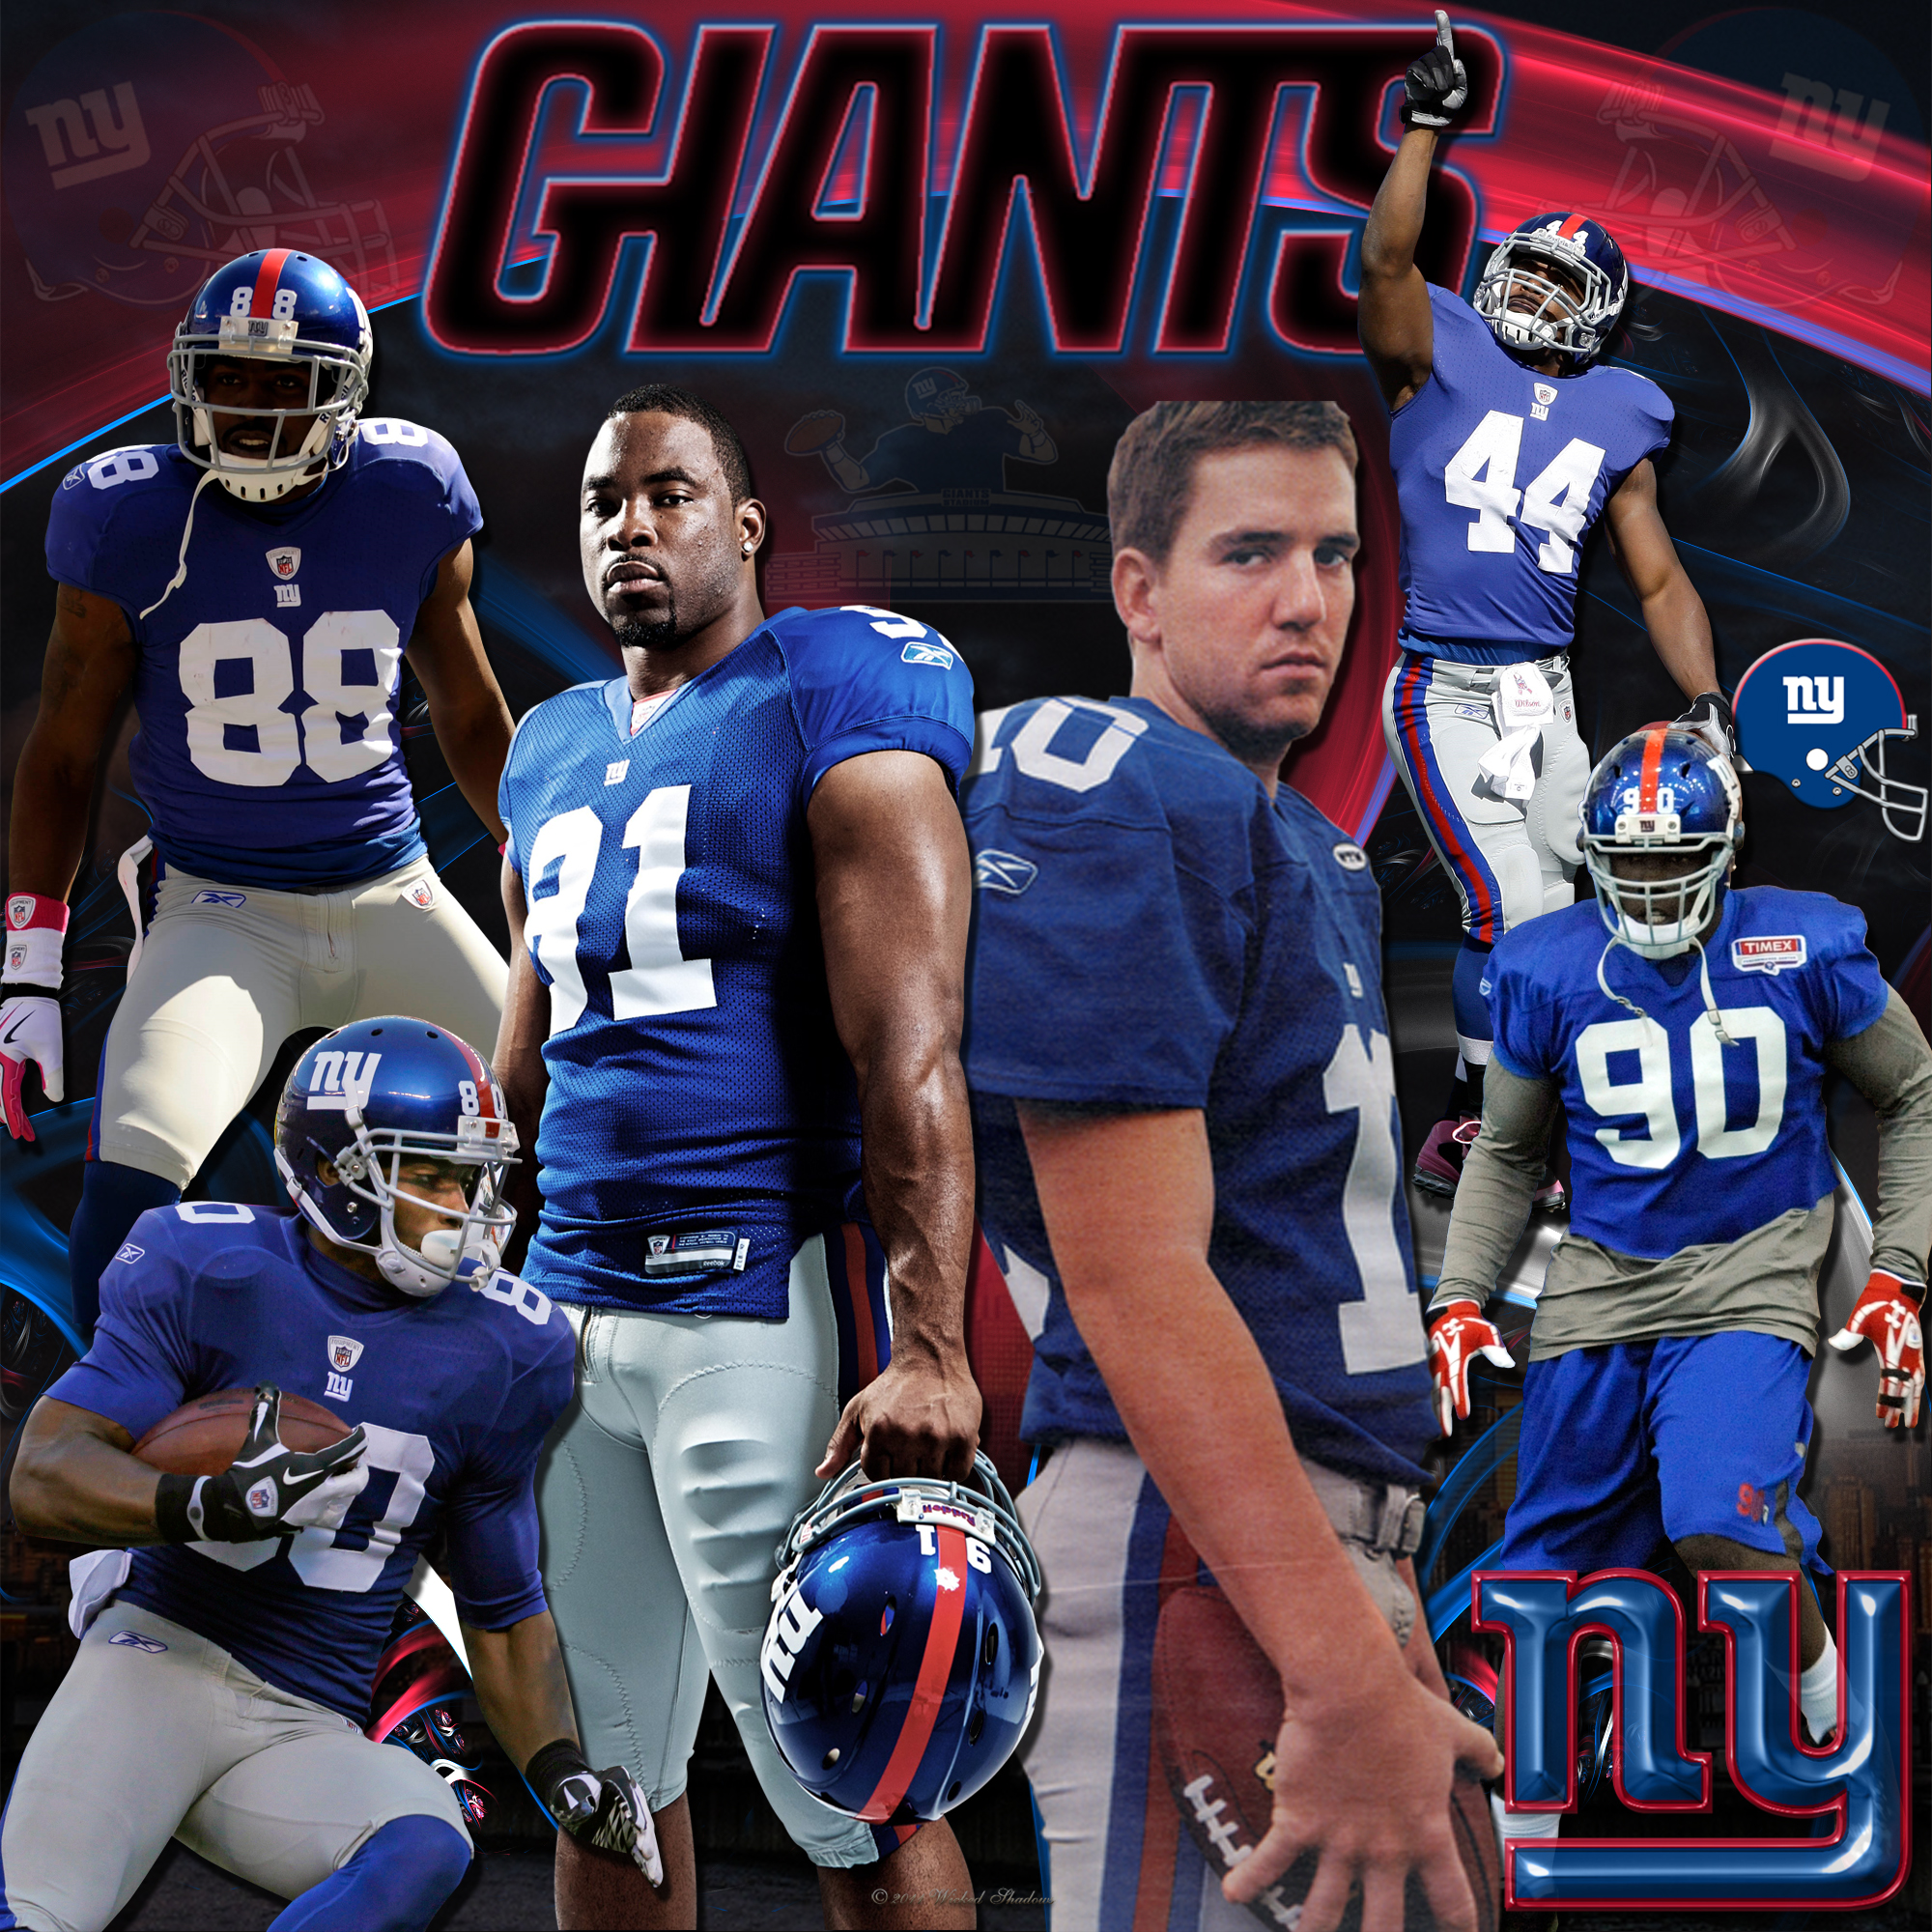 Wallpapers By Wicked Shadows: New York Giants Team Wallpaper